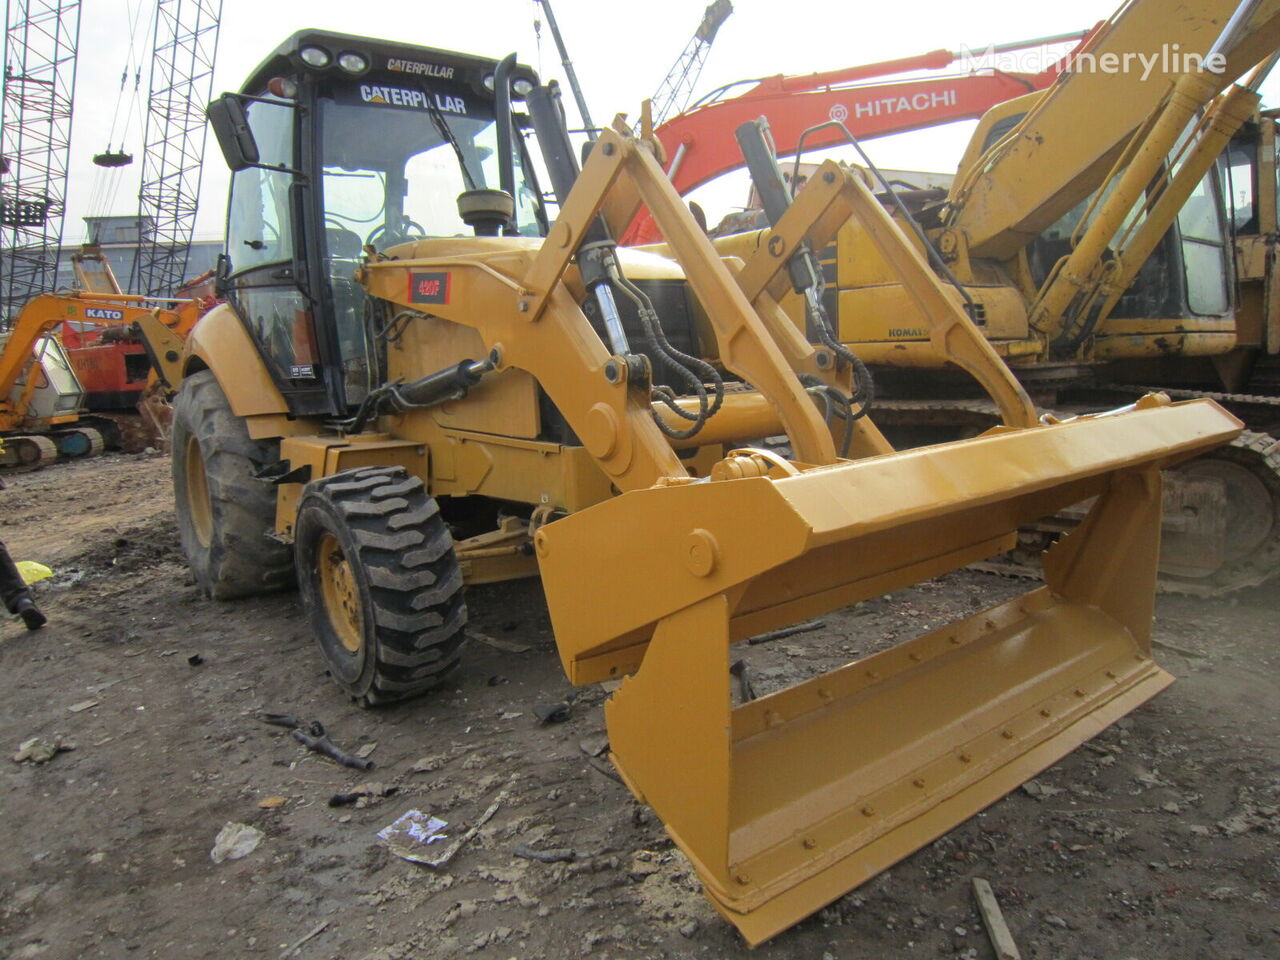 CATERPILLAR 420F backhoe loader